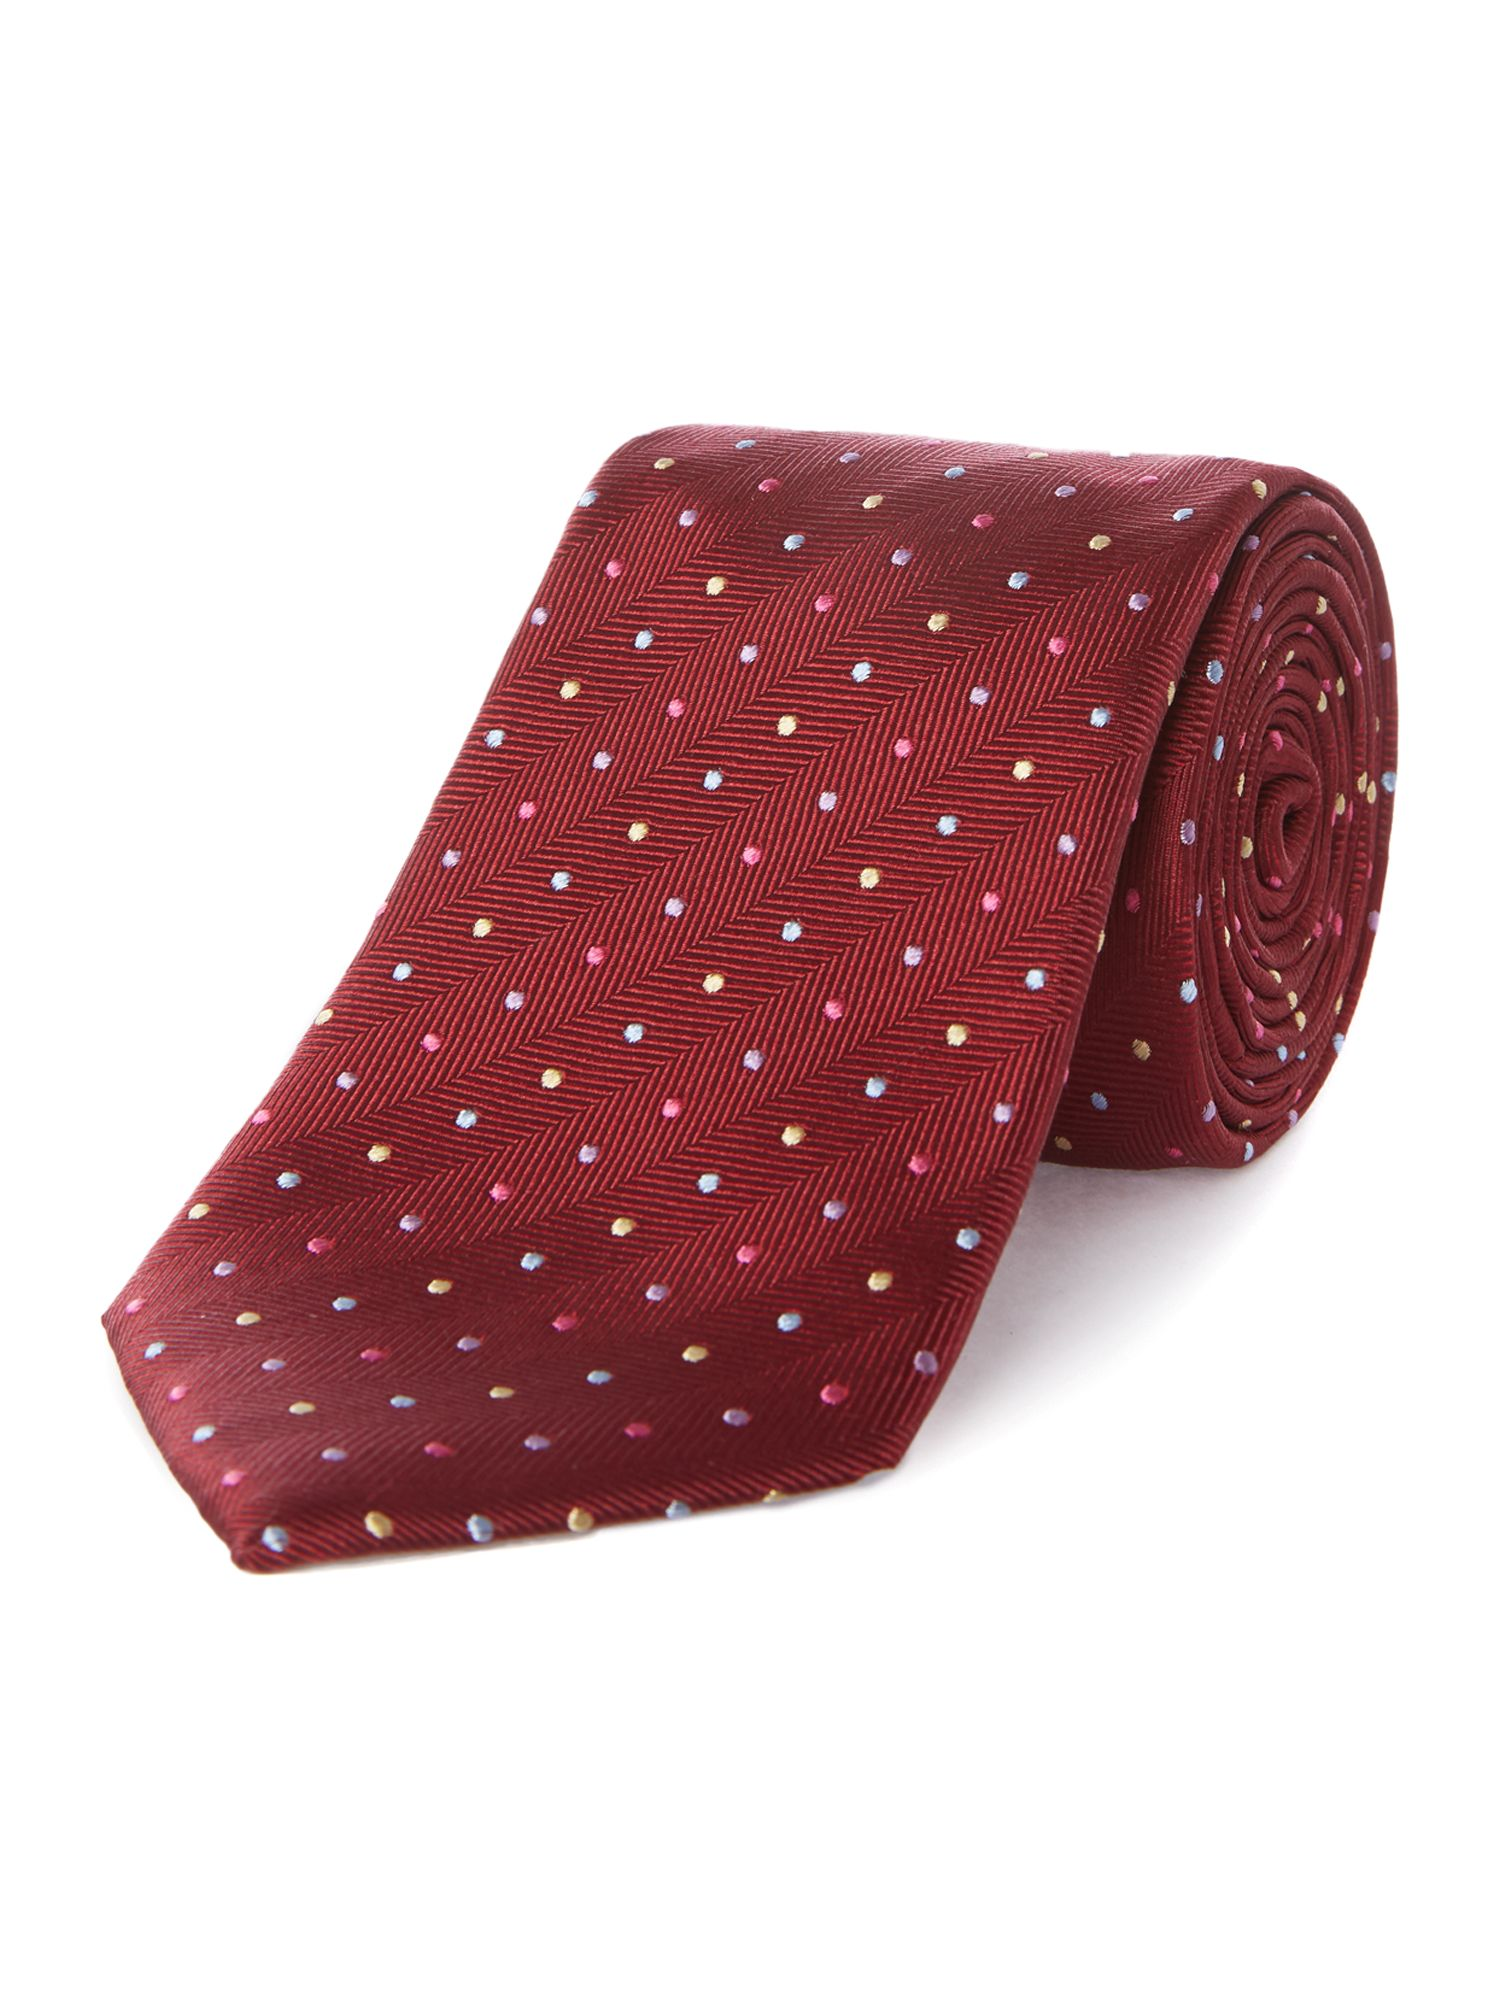 Dalderby herringbone silk tie with spots